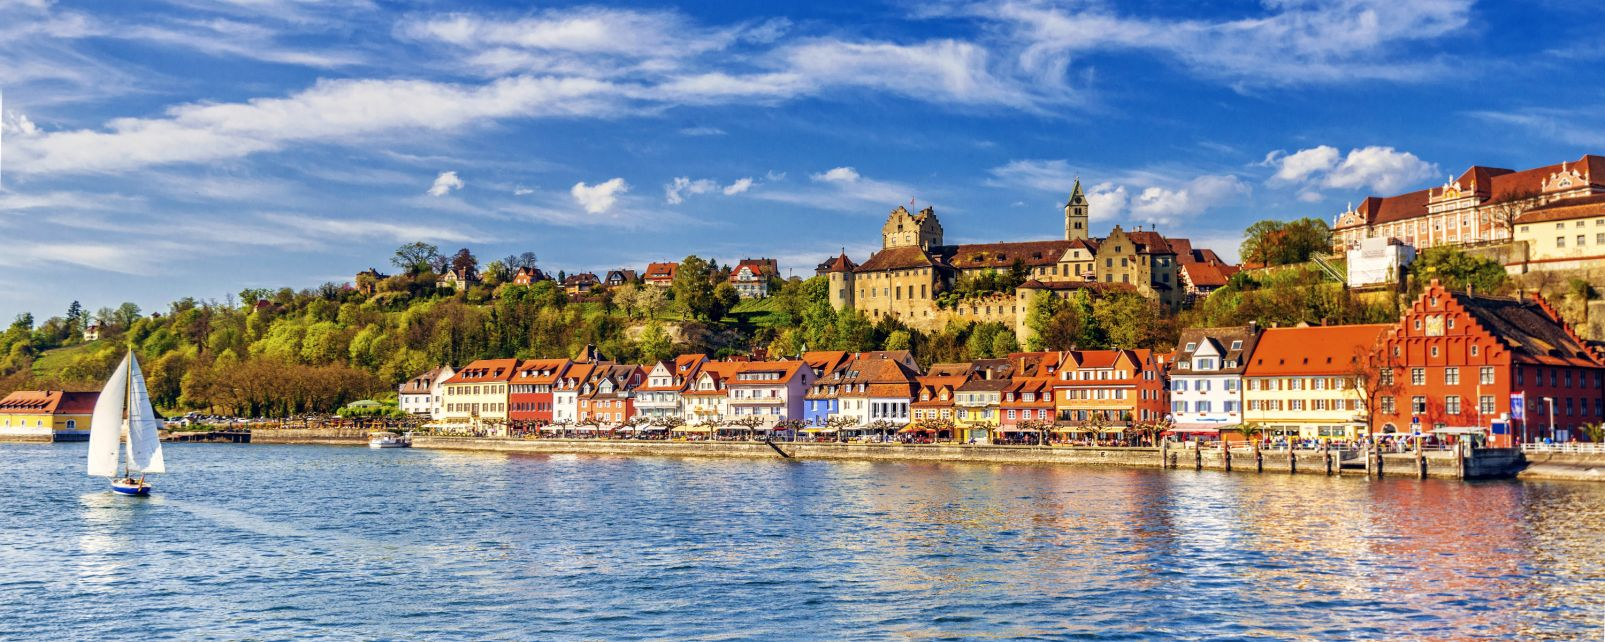 Allemagne, Bodensee, Constance, lac, Meersburg, voile, voilier, Bade-Wurtemberg, chateau.